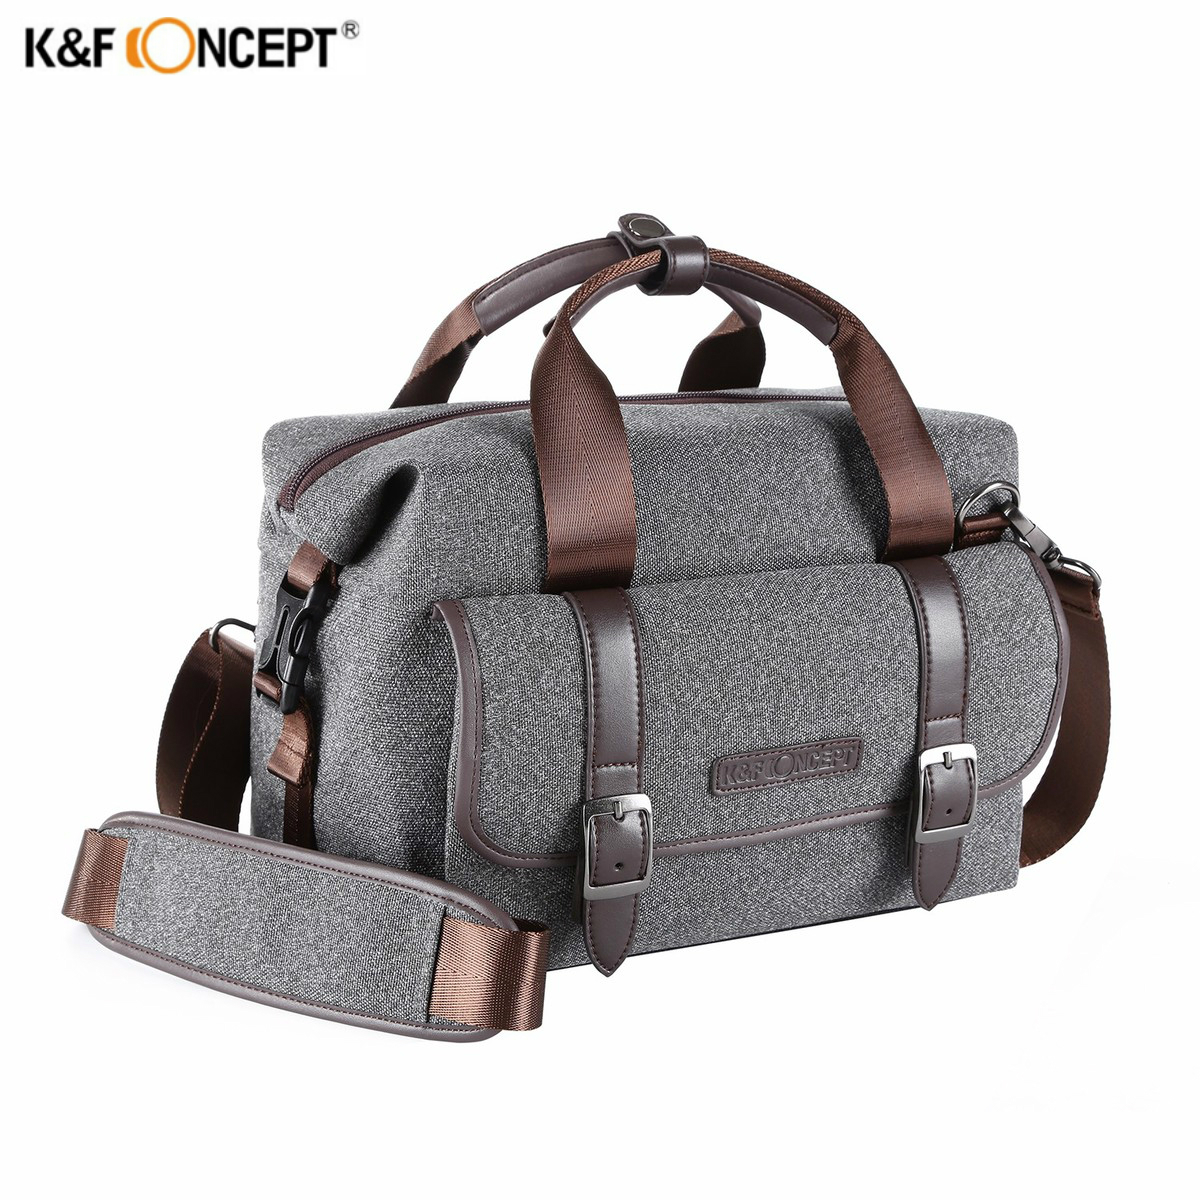 New Arrival K&F CONCEPT Single Shoulder Camera Bag Waterproof Shockproof Travel Photo Bags Leisure Package For Canon Nikon DSLR ozuko brand dslr camera bag fashion chest pack slr camera video photo digital single shoulder bag waterproof school travel bags